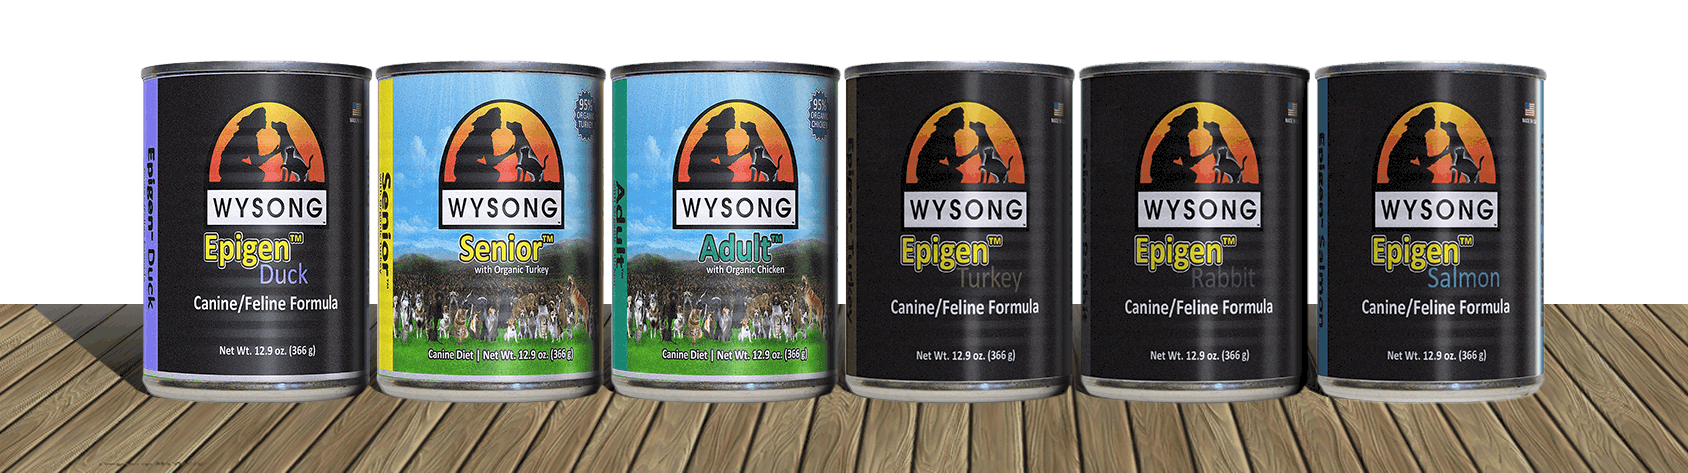 Wysong Dog Canned